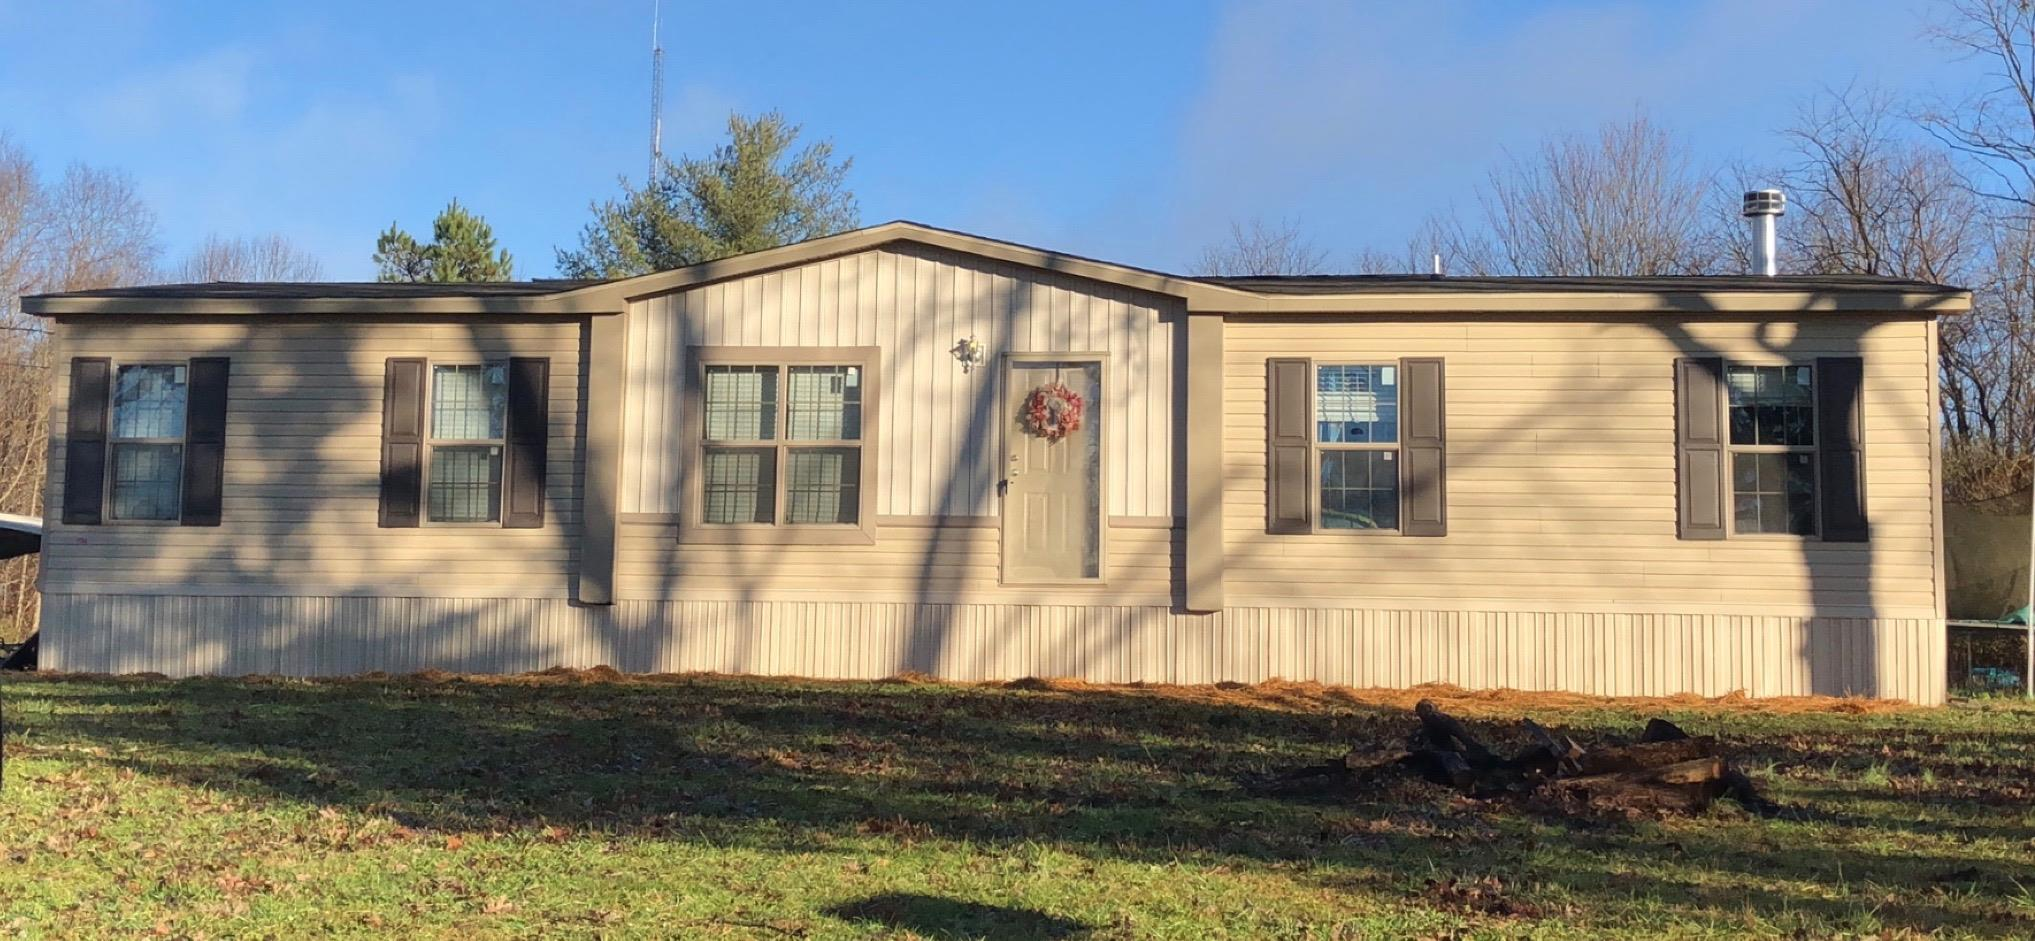 1489 Fire Tower Rd, Tracy City, TN 37387 - Tracy City, TN real estate listing